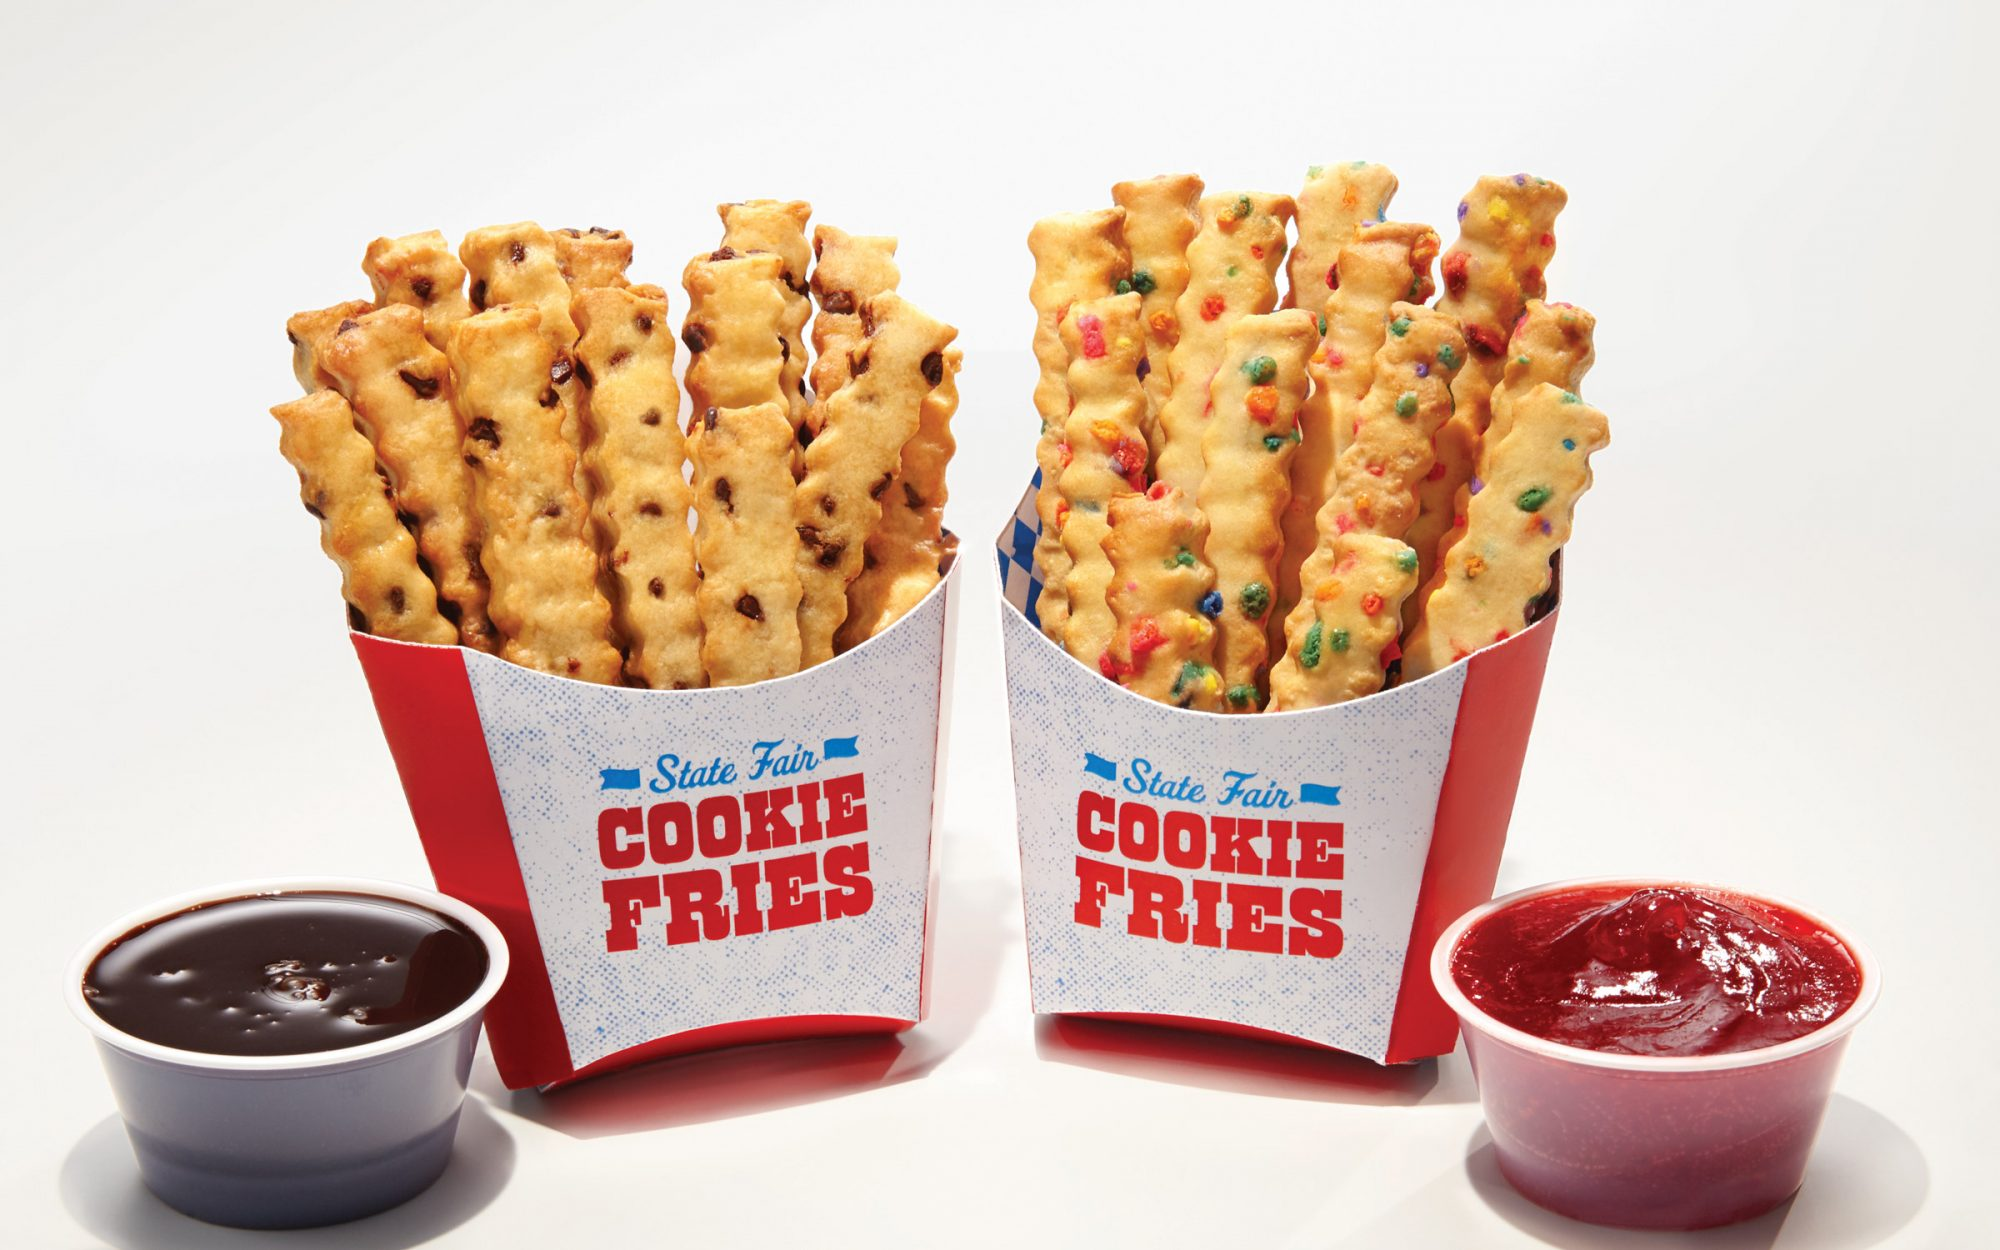 State Fair Cookie Fries